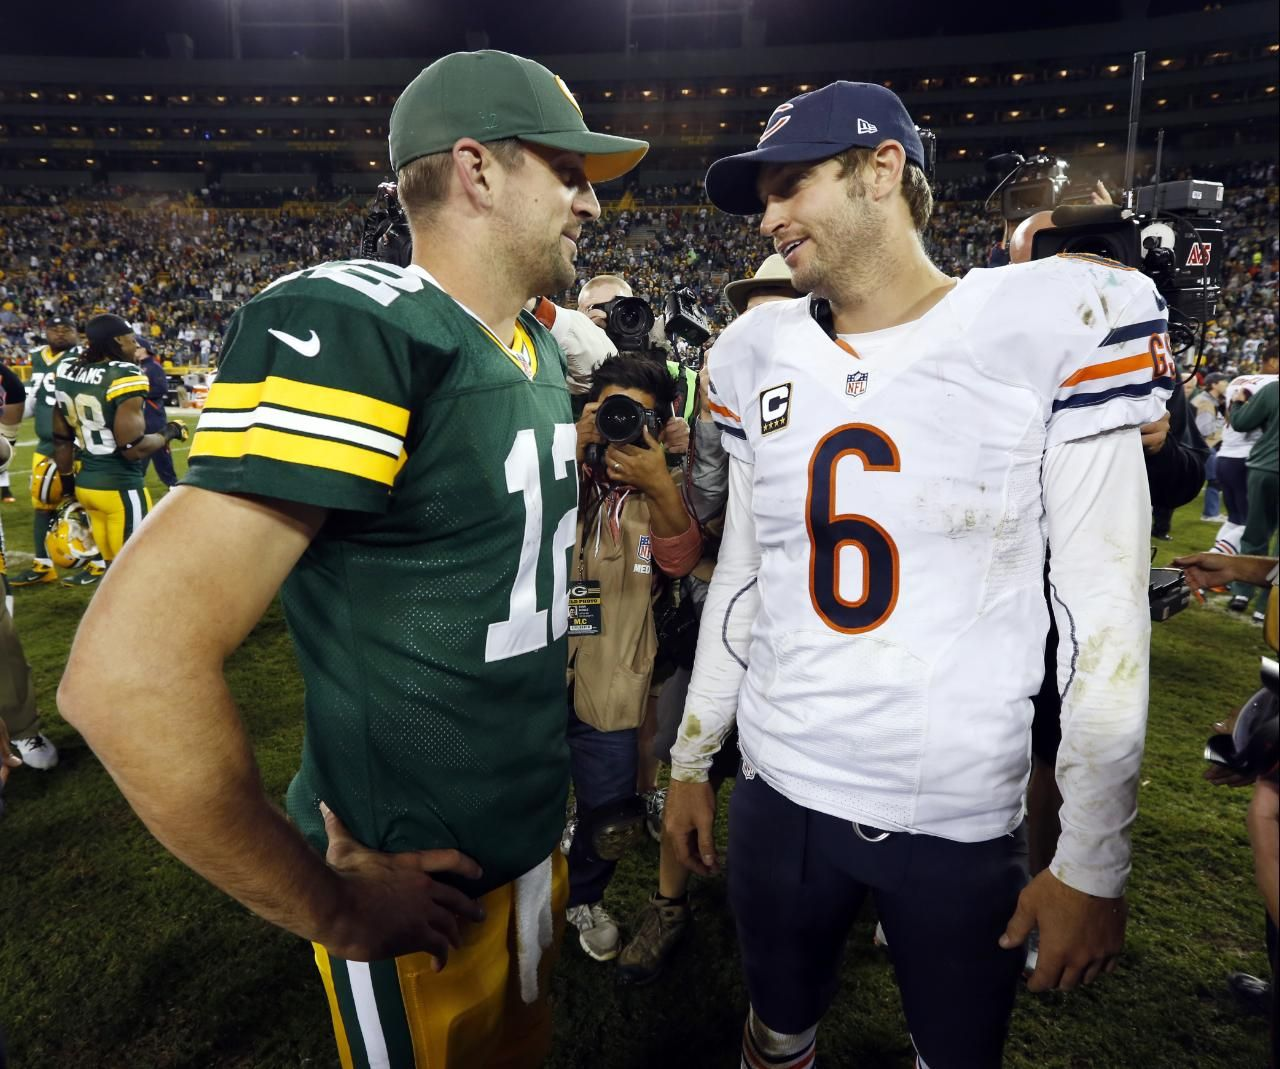 Green Bay Packers Aaron Rodgers 12 Talks To Chicago Bears Jay Cutler 6 After The Second Nfl Football Games Green Bay Packers Aaron Rodgers Chicago Bears